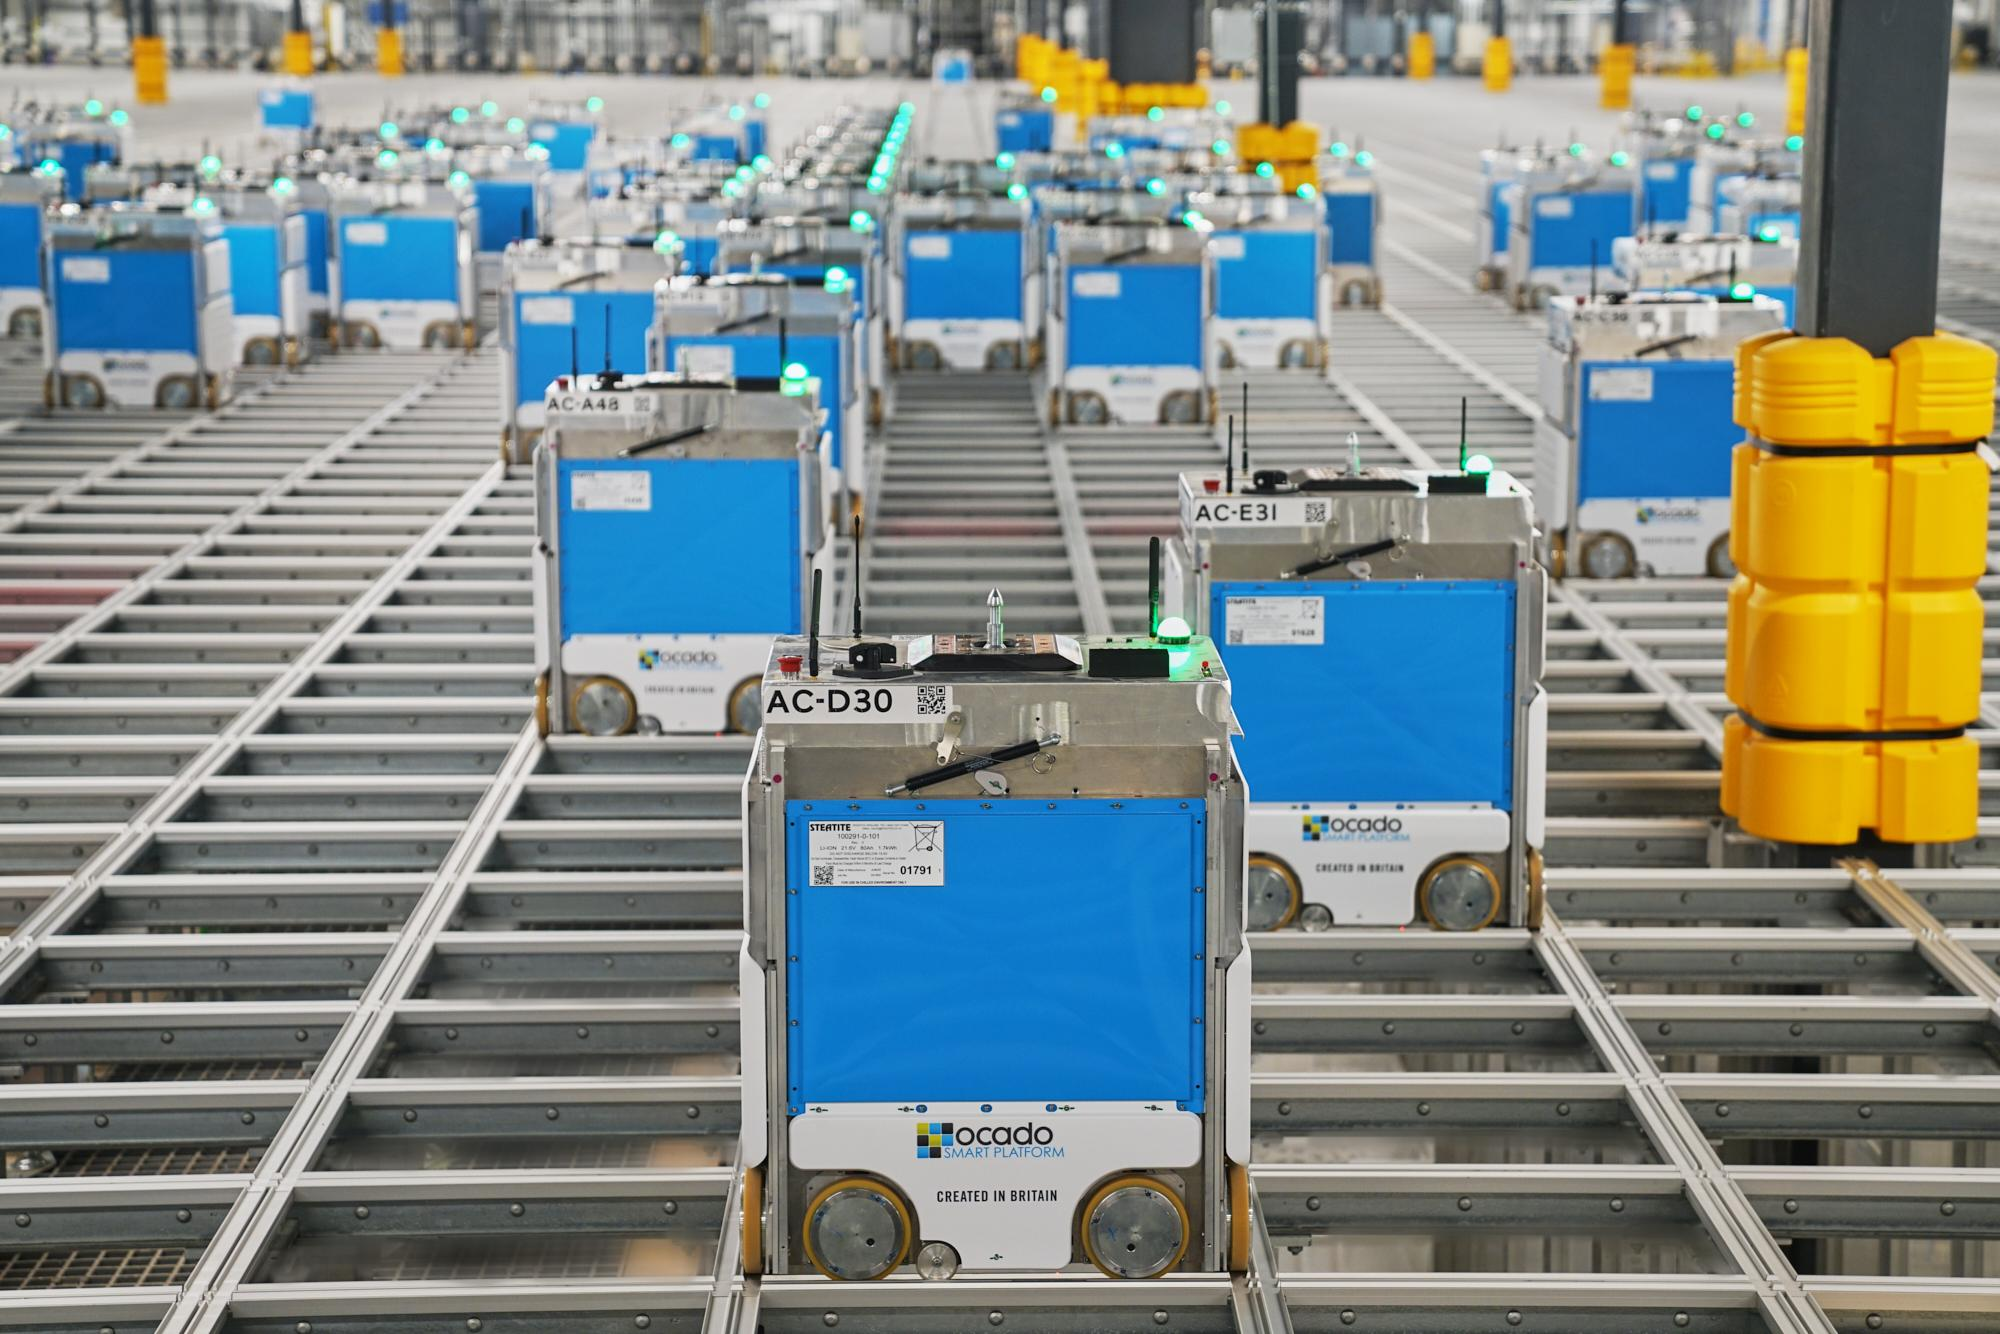 Kroger launches its first Ocado-powered 'shed', a massive, robot-filled fulfillment center in Ohio